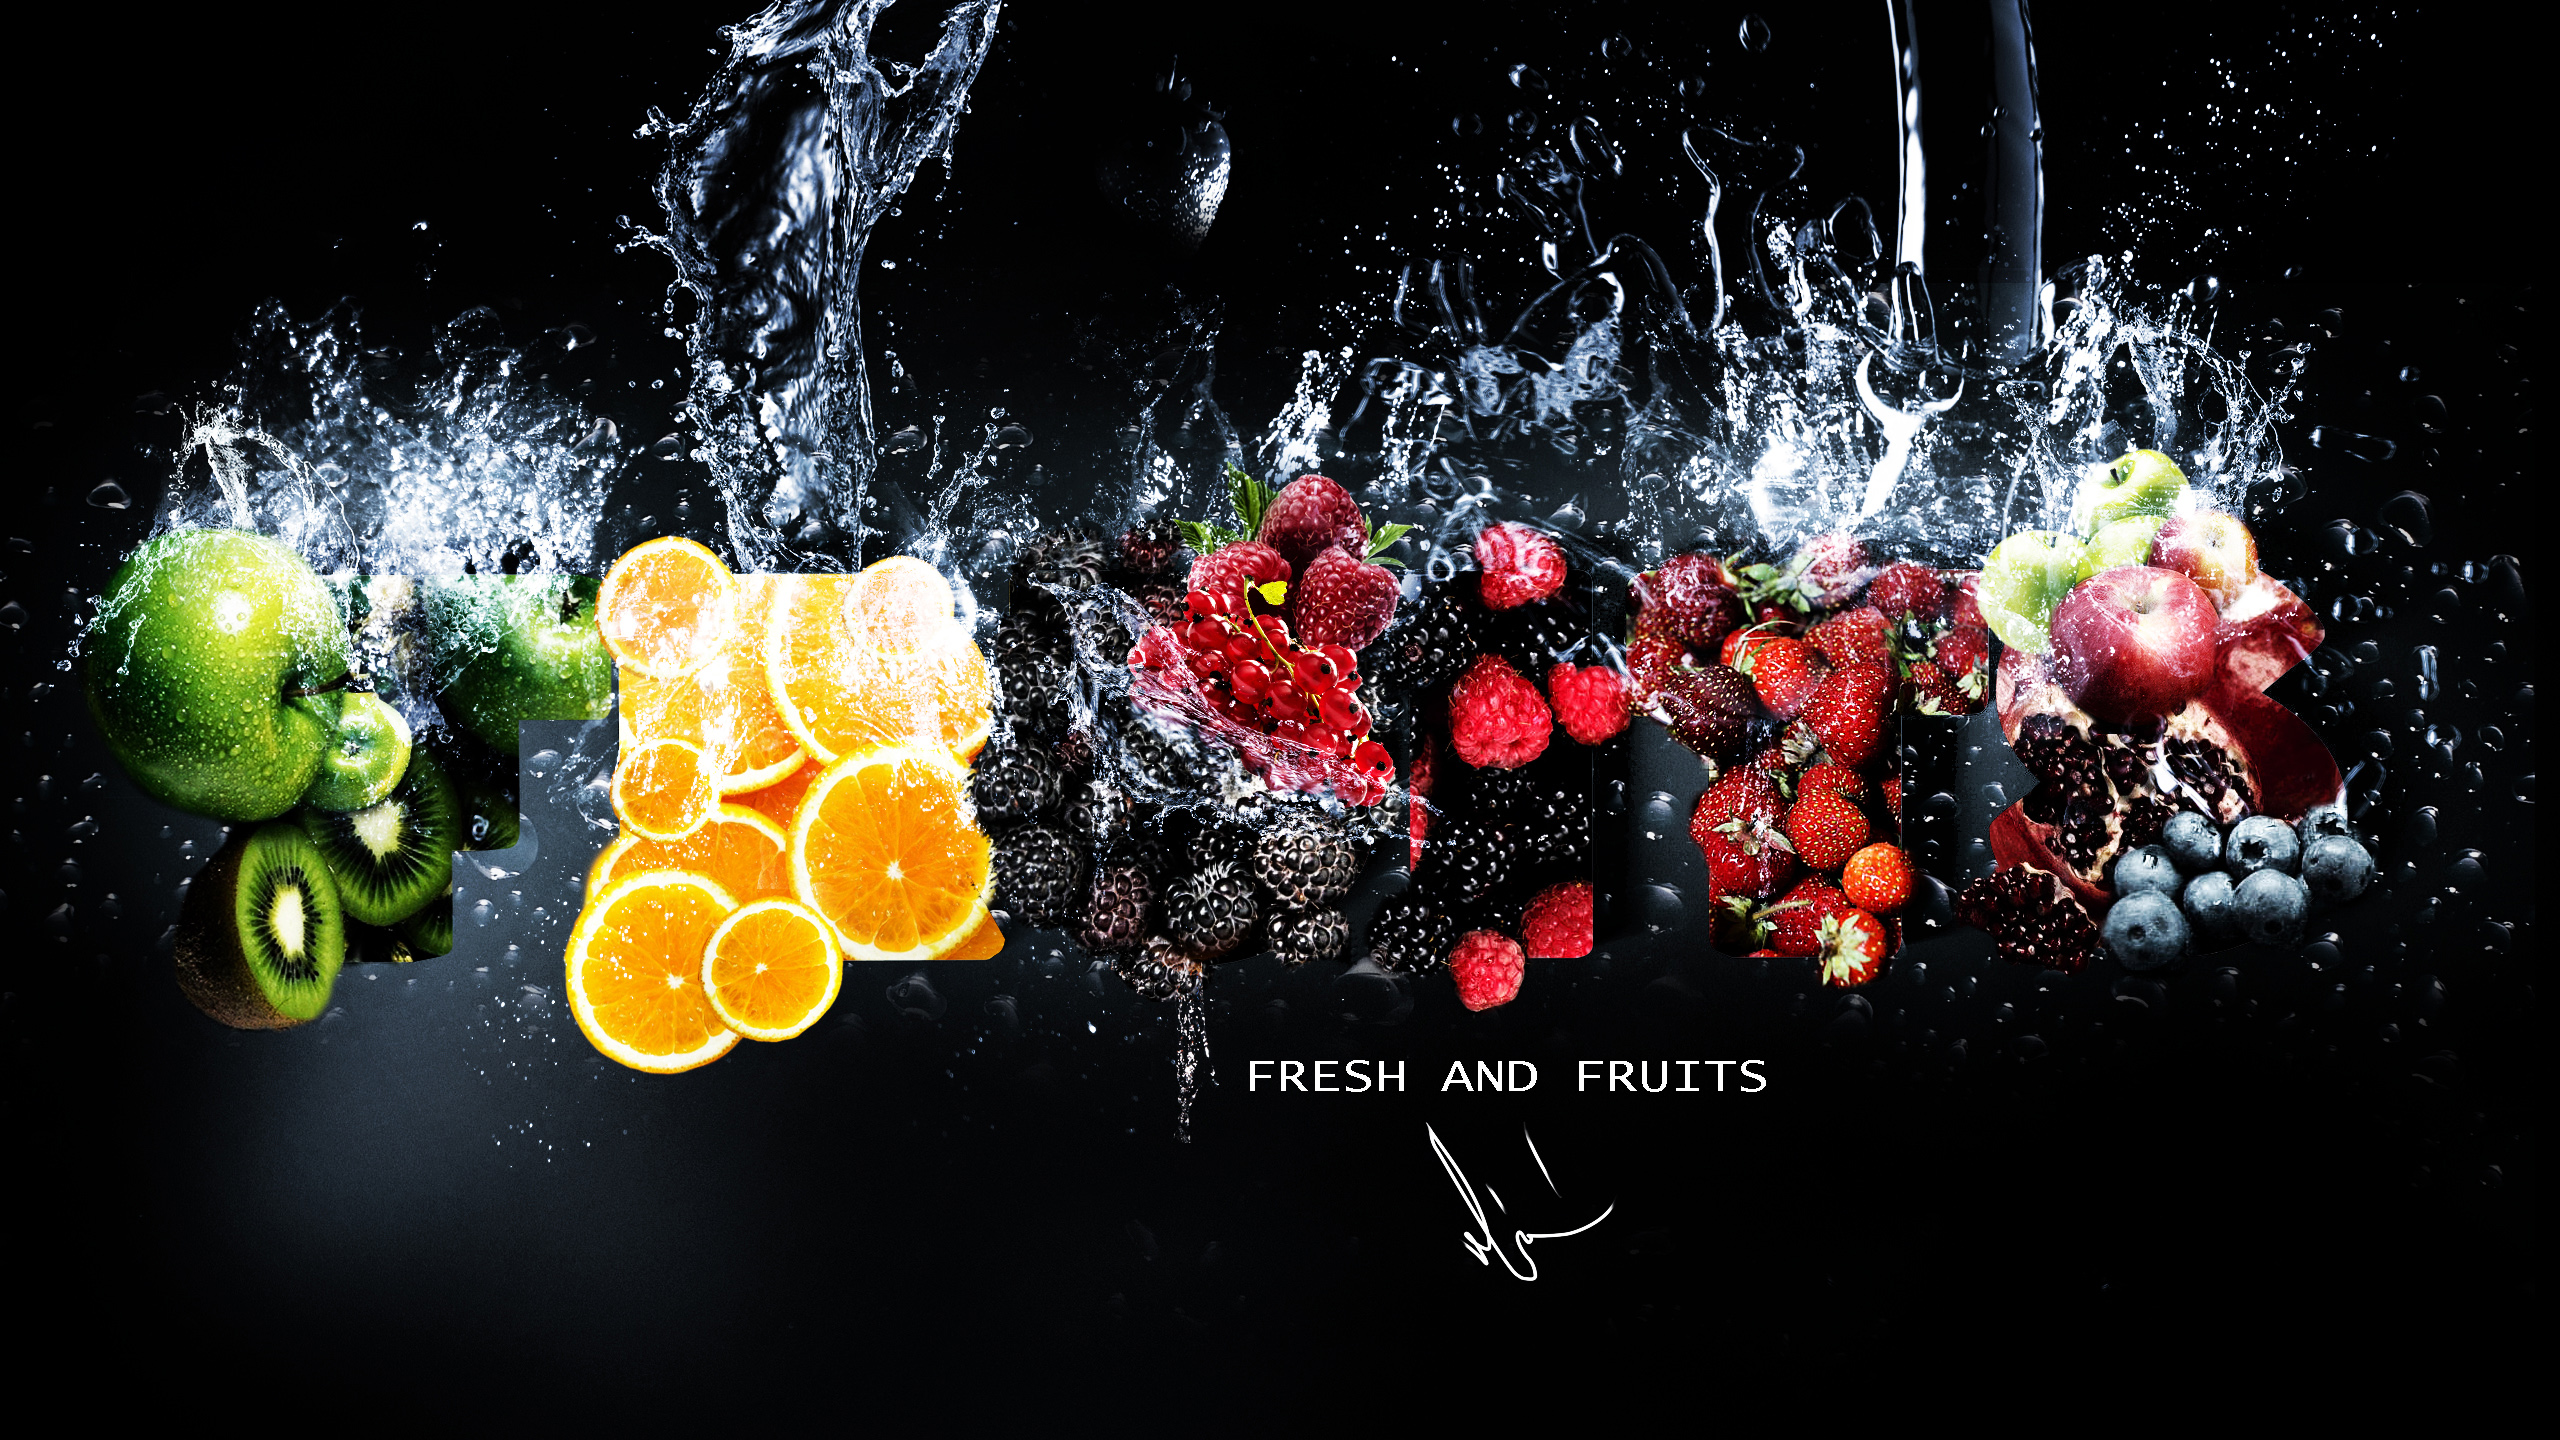 Fresh Fruits931145211 - Fresh Fruits - Fruits, Fresh